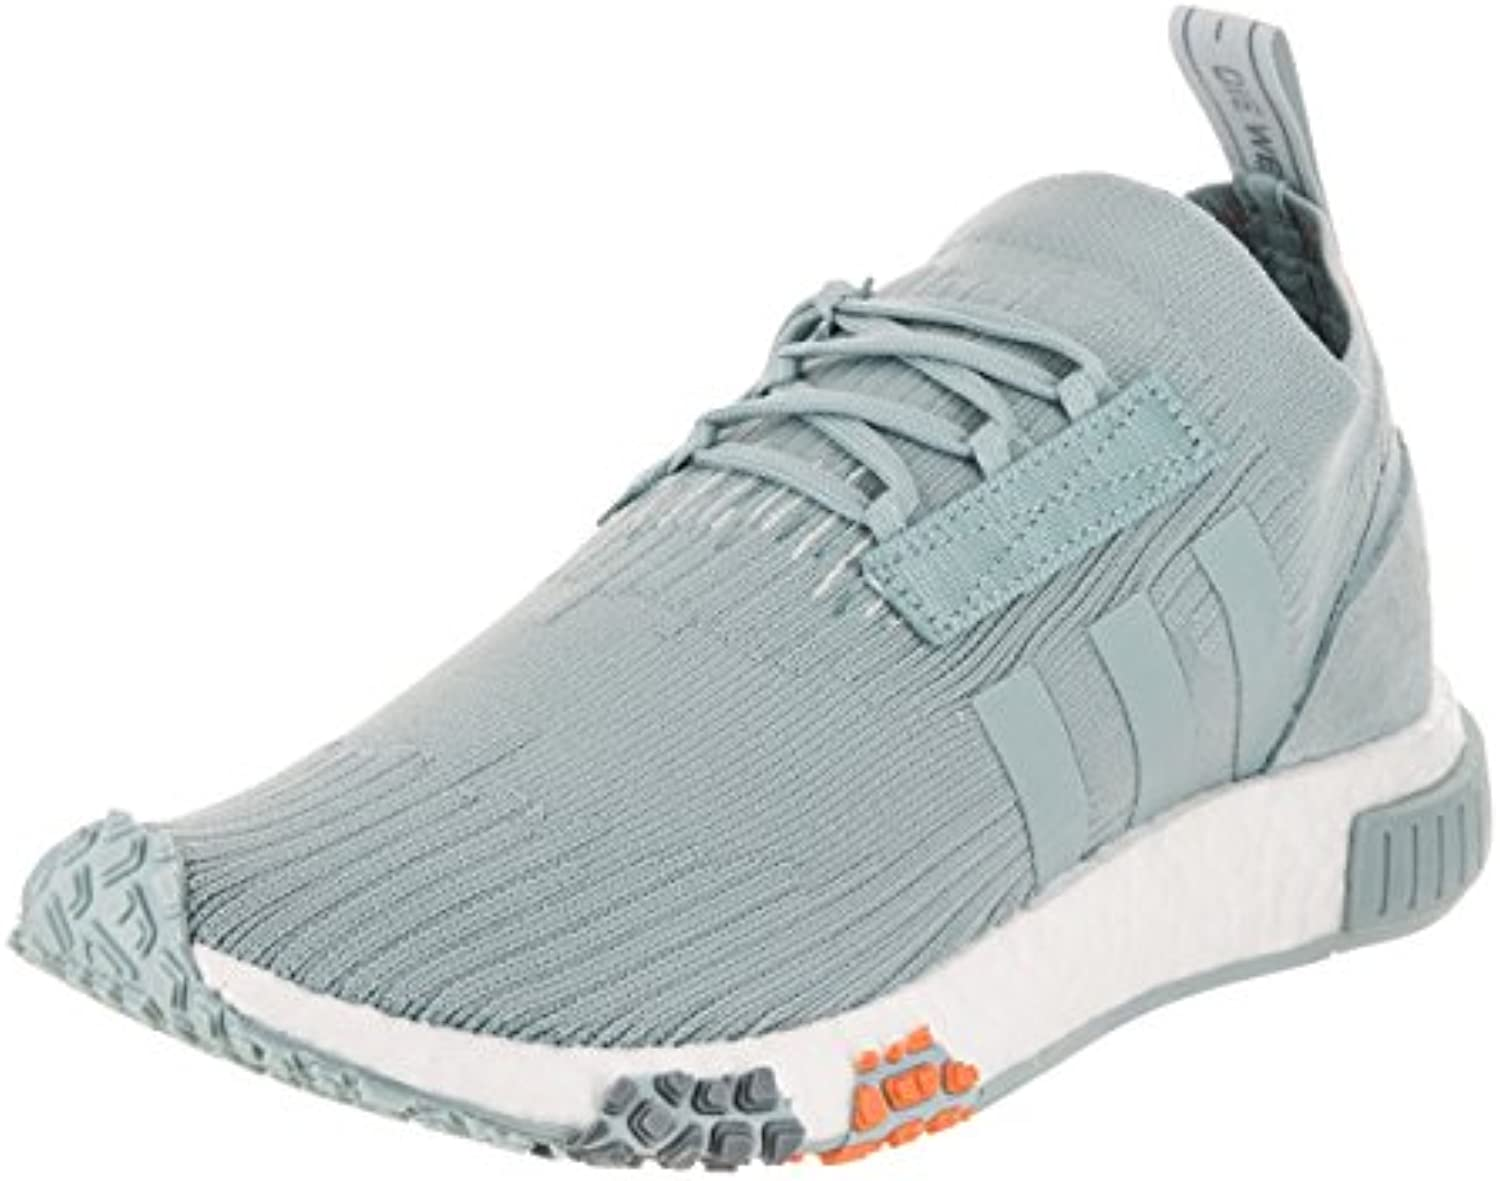 Man's/Woman's adidas Women's NMD_Racer Primeknit Running Shoe Strong heat and resistance wear resistance and low cost Exquisite processing b0db9a